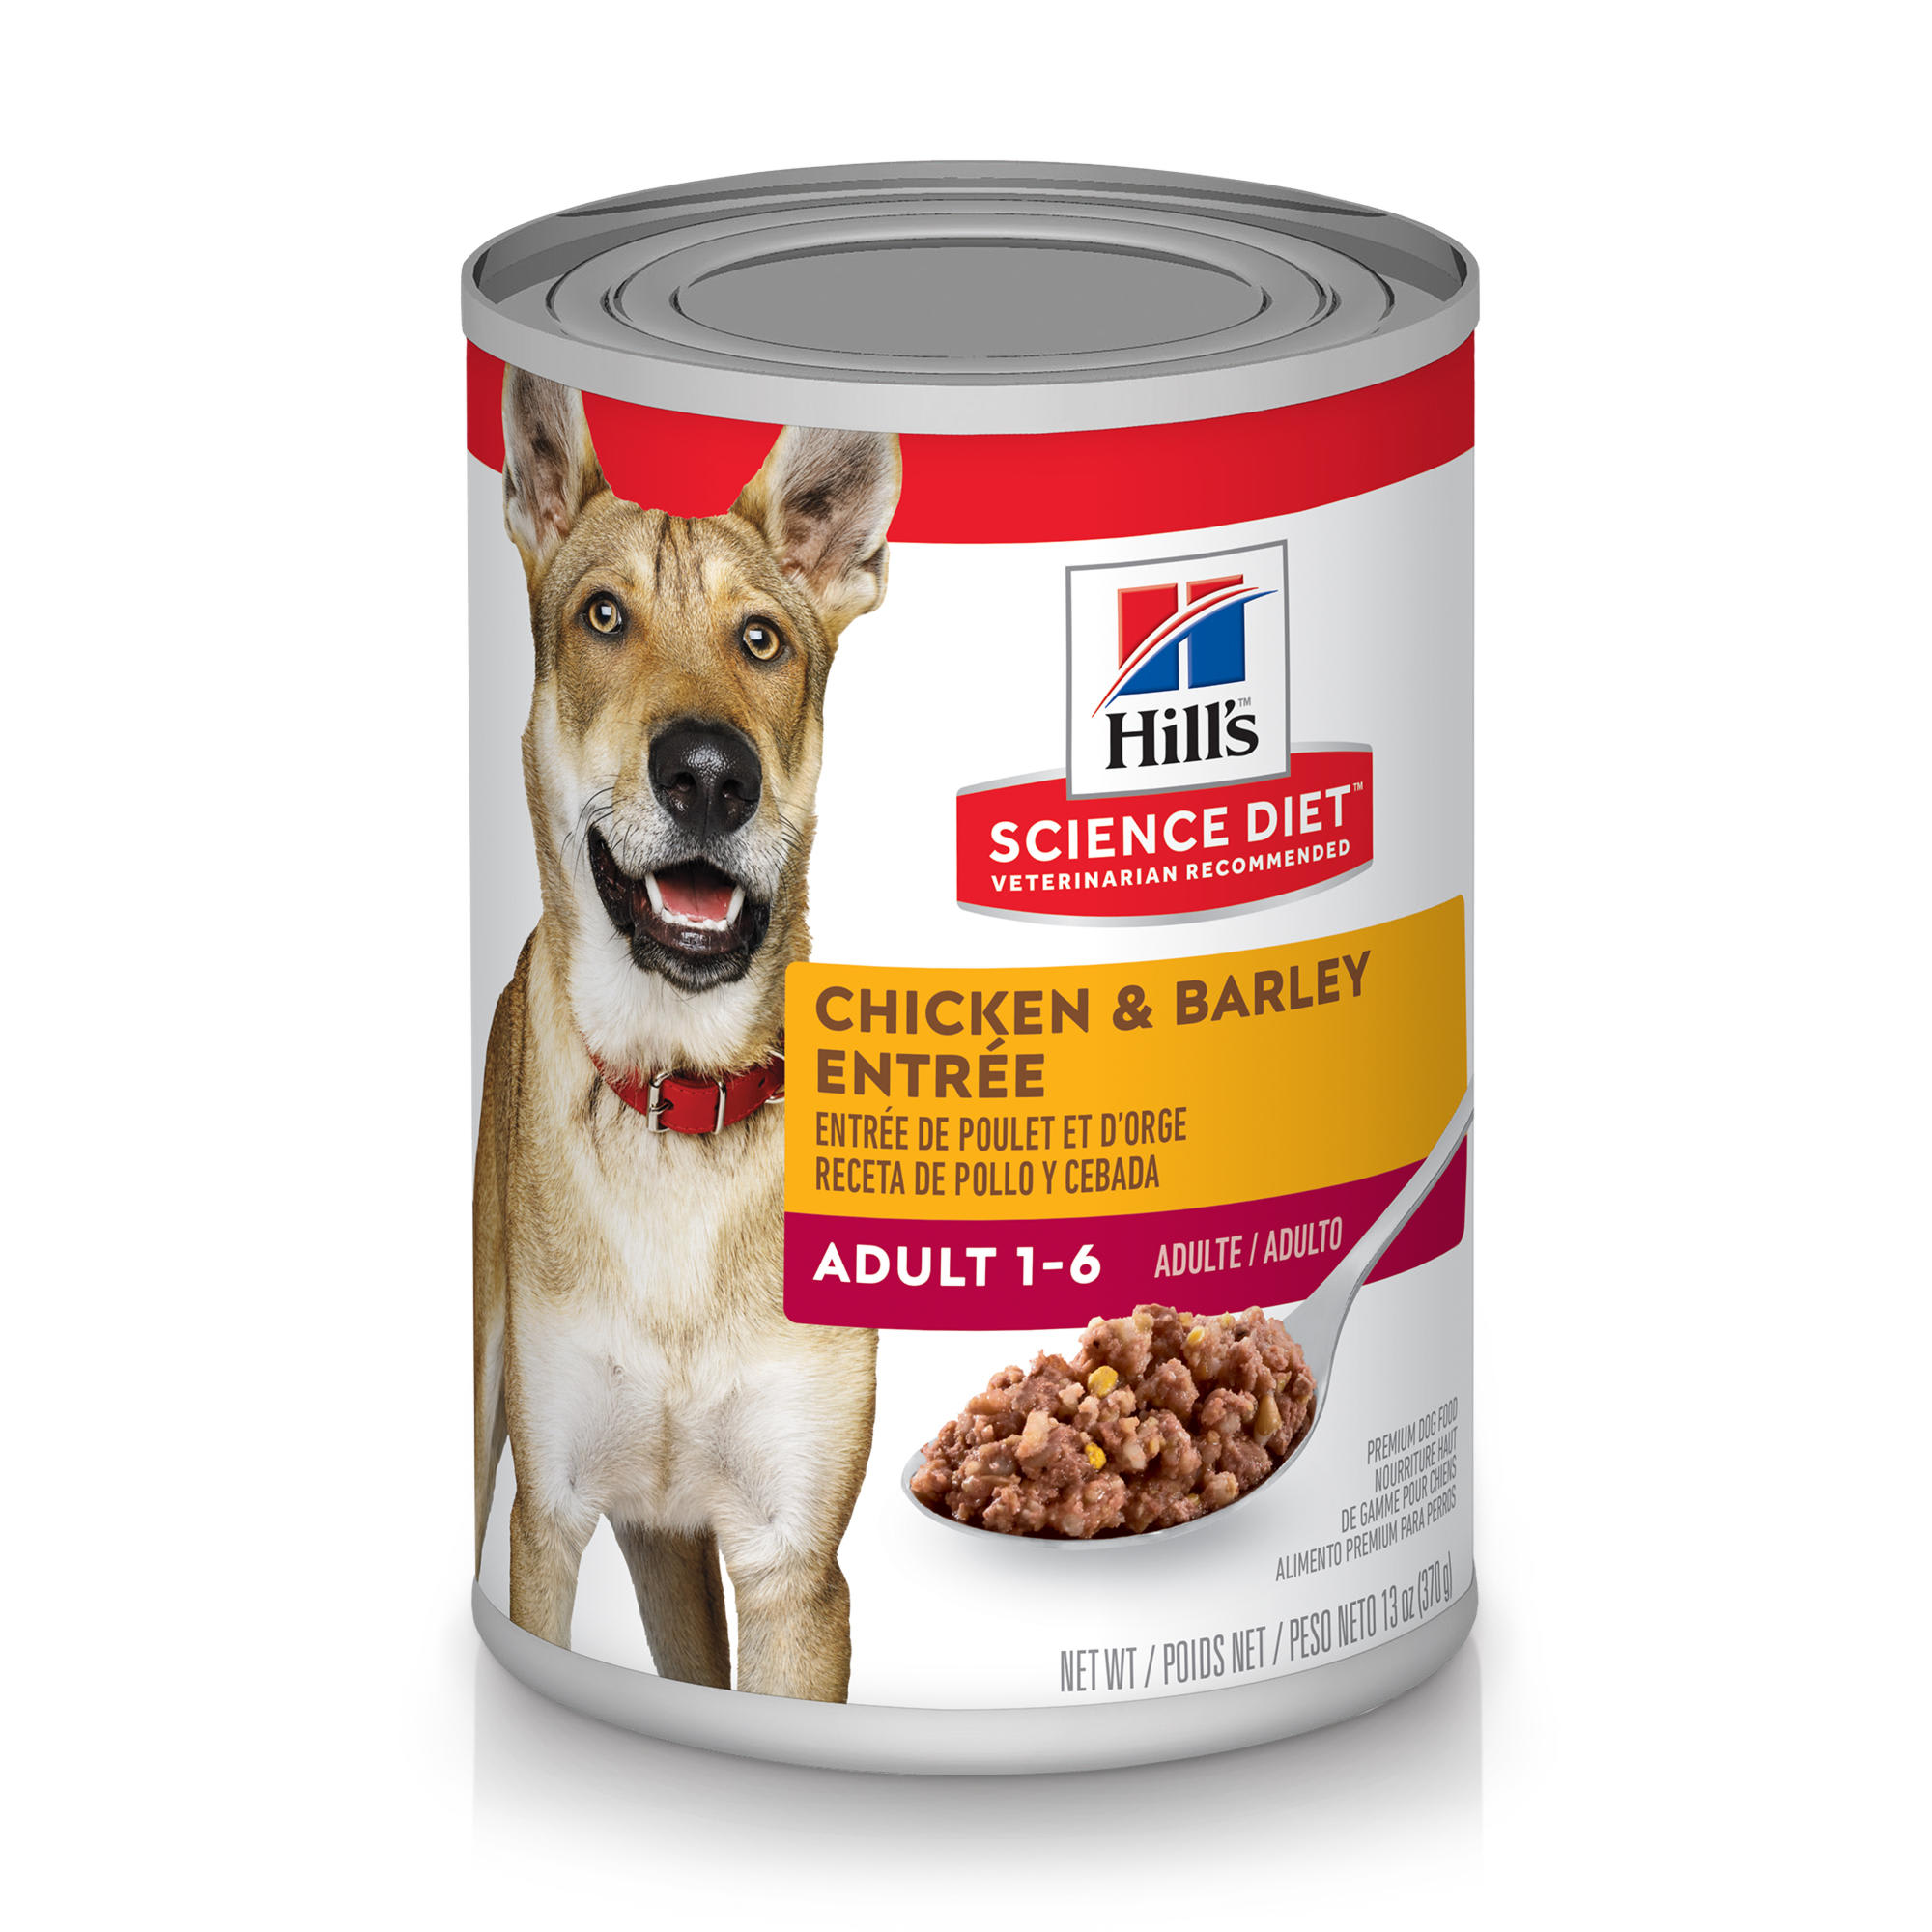 Hill's Science Diet Adult Chicken & Barley Entree Canned Dog Food -  P5024335